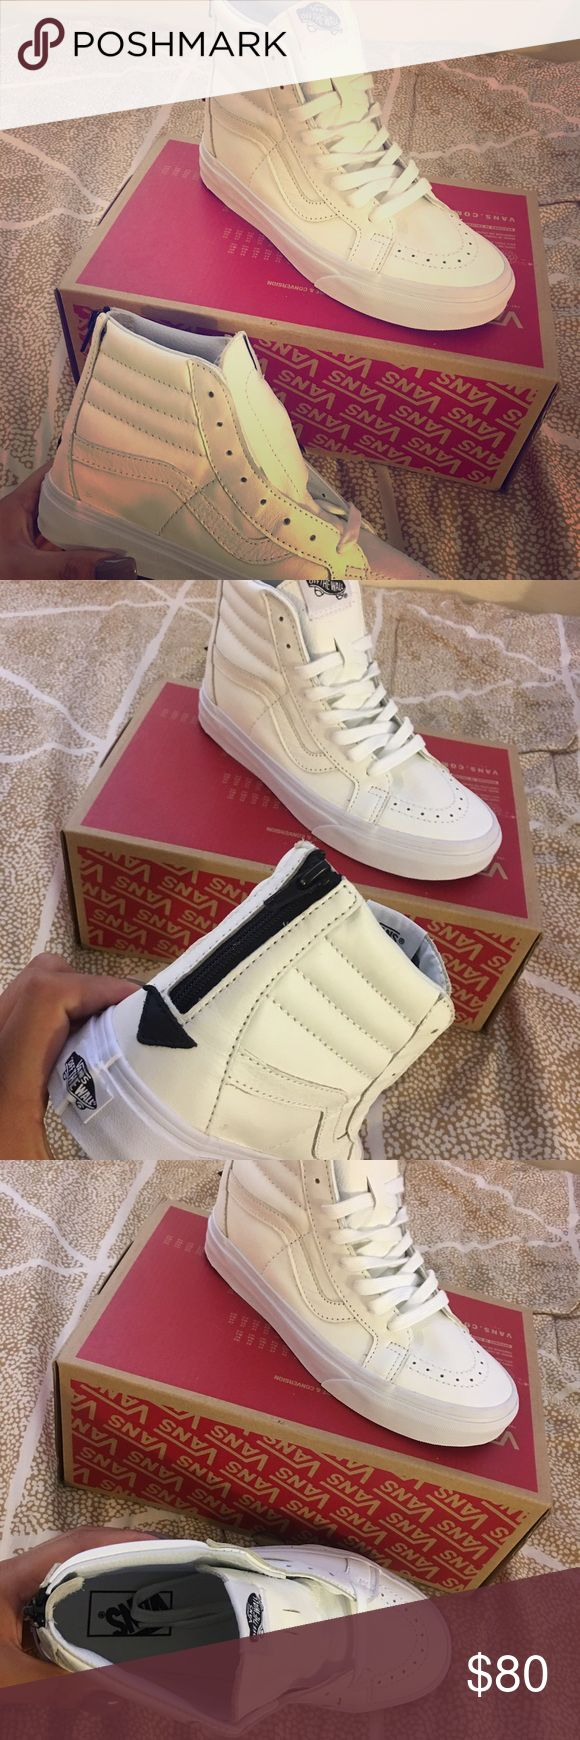 White high top vans New with tags. Women's white leather vans Vans Shoes Sneakers